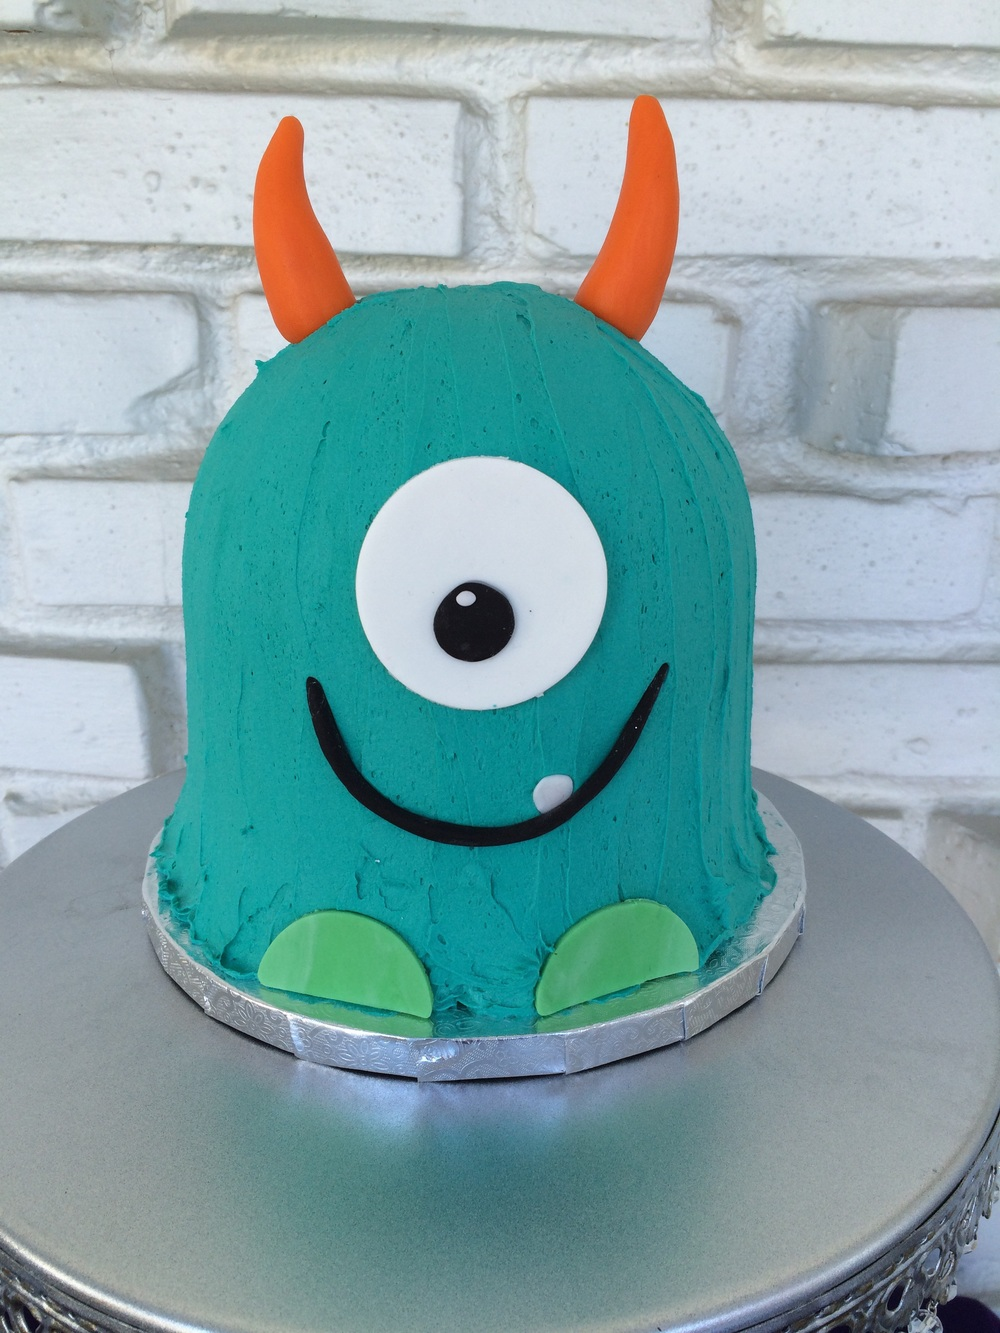 Lemon cake filled with lemon curd and topped with vanilla buttercream and fondant monster accents